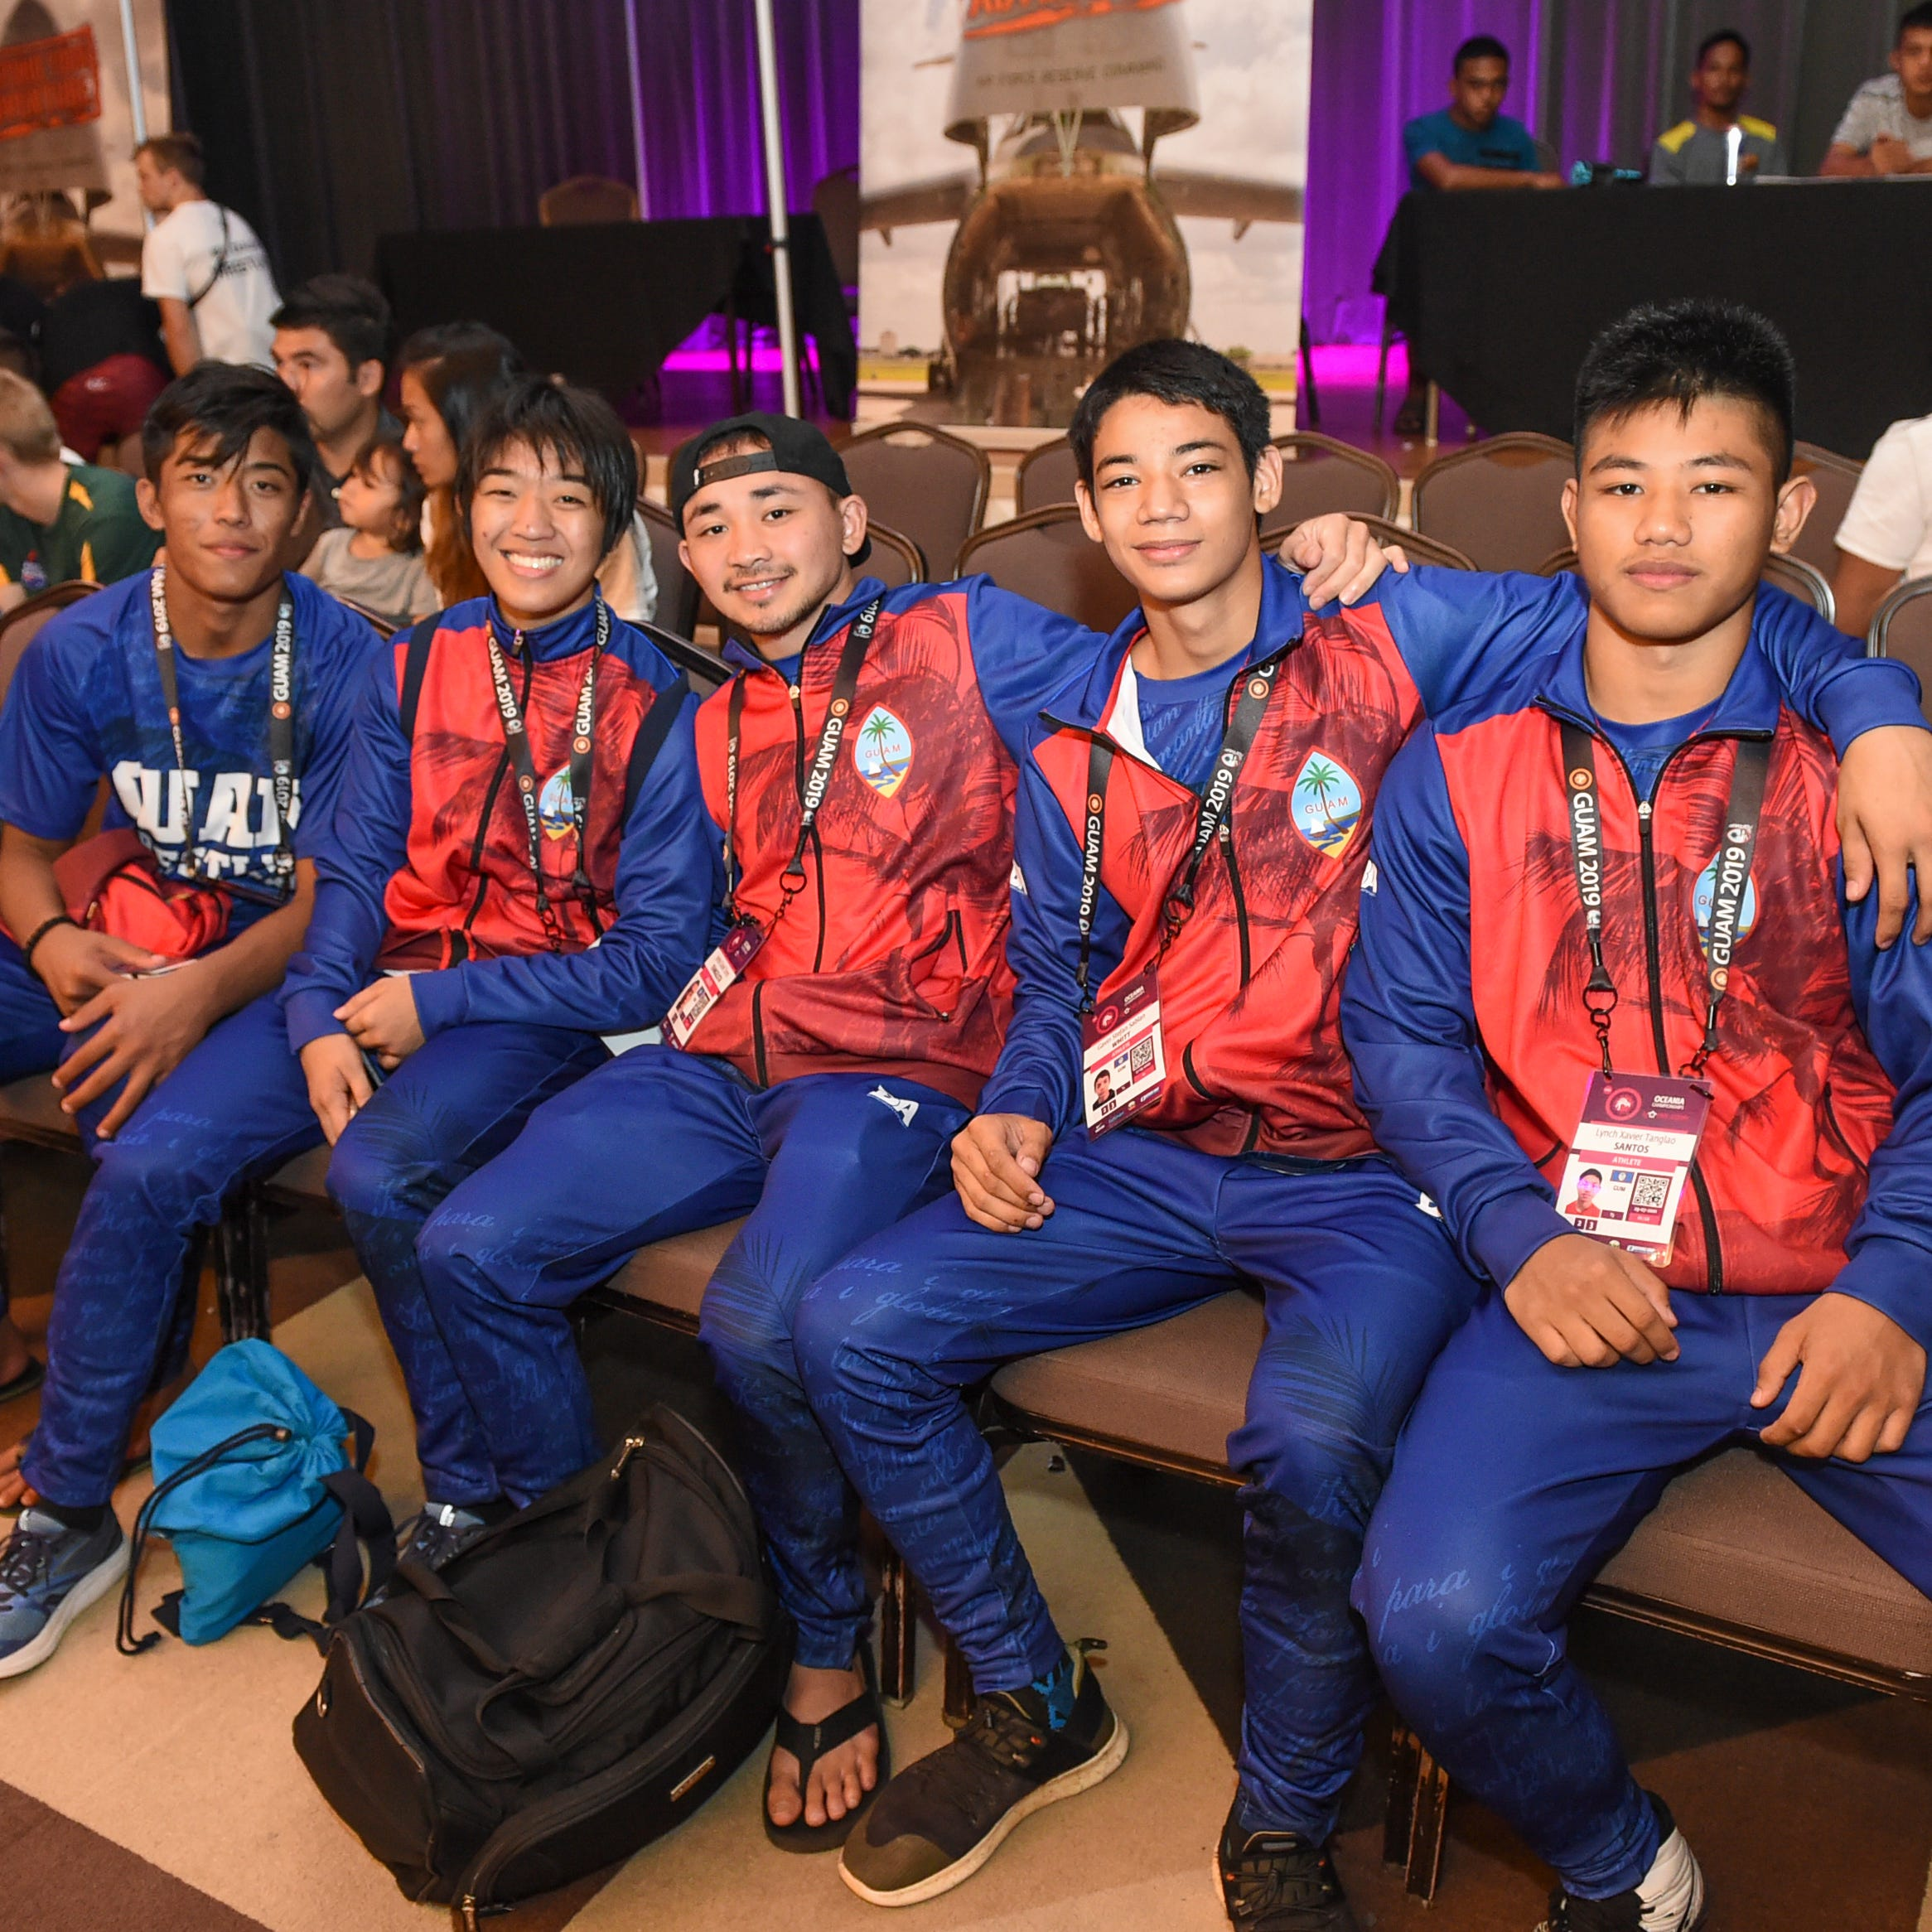 Guam's grapplers shine at Oceania championships